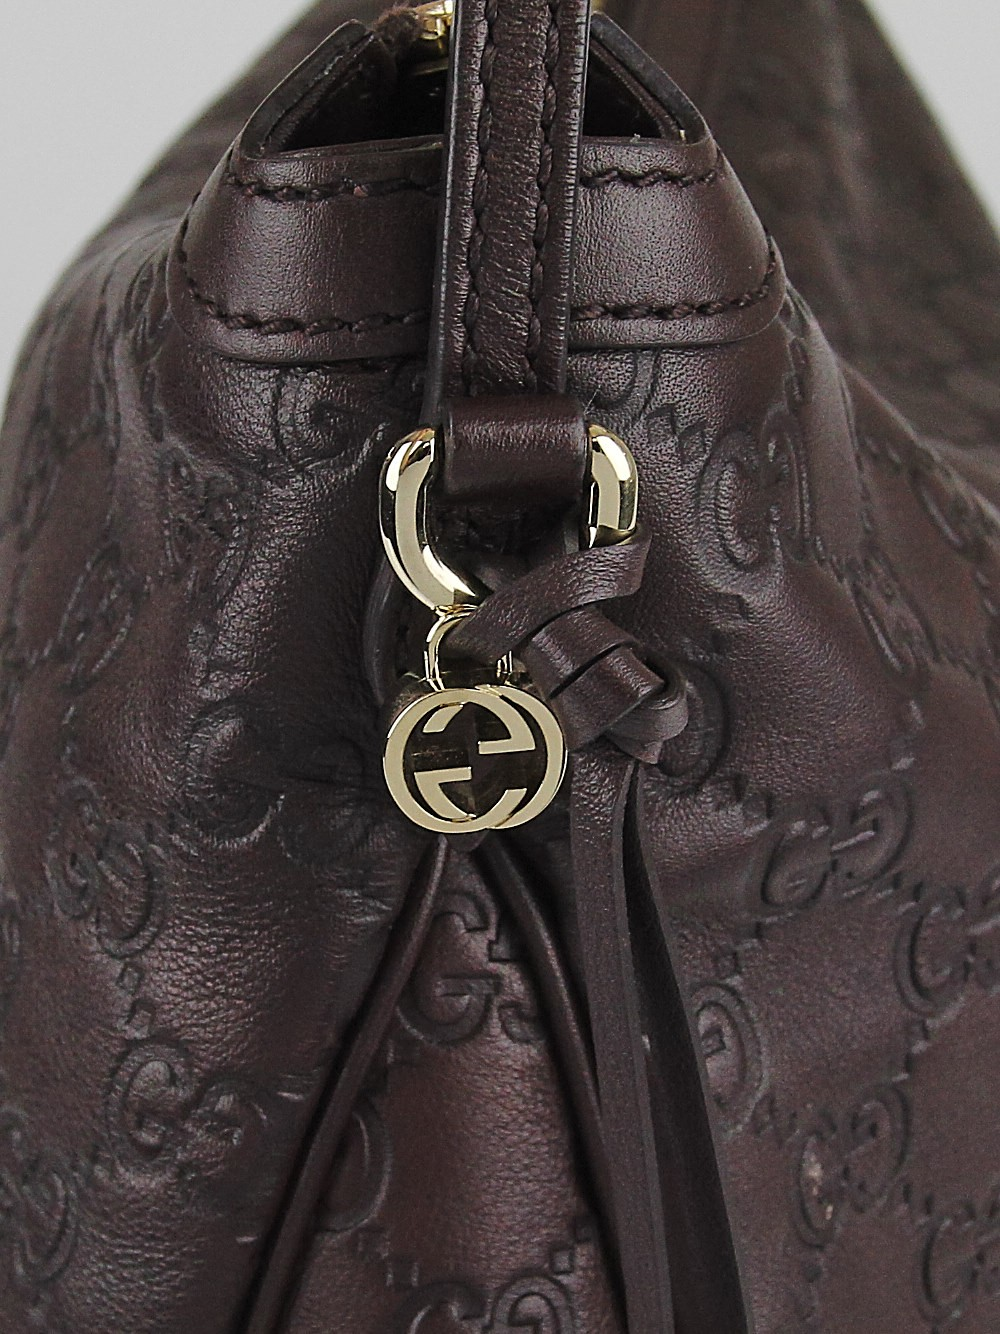 Gucci Ebony Guccissima Leather Bree Original Hobo Bag - Yoogi's Closet